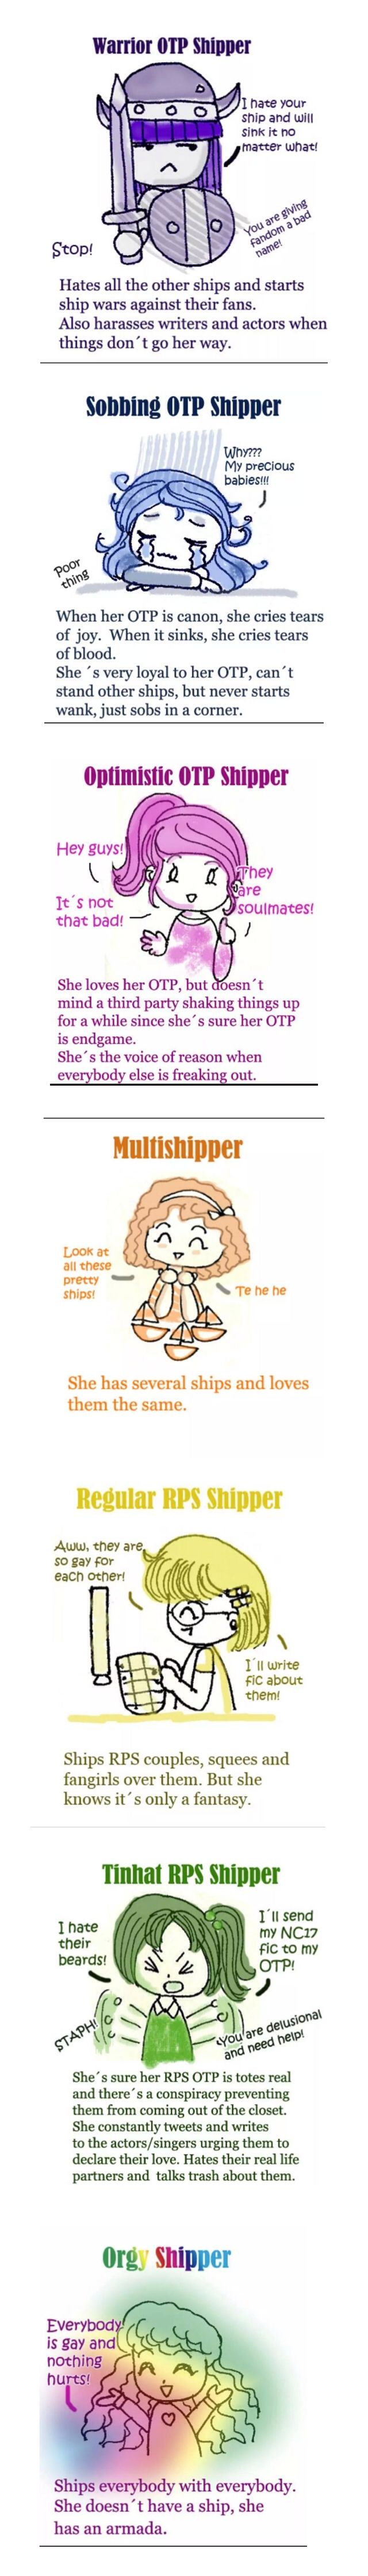 The different types of shipper - I'm optimistic / multi / regular.  Please DON'T comment your own, just repin it & write your own.